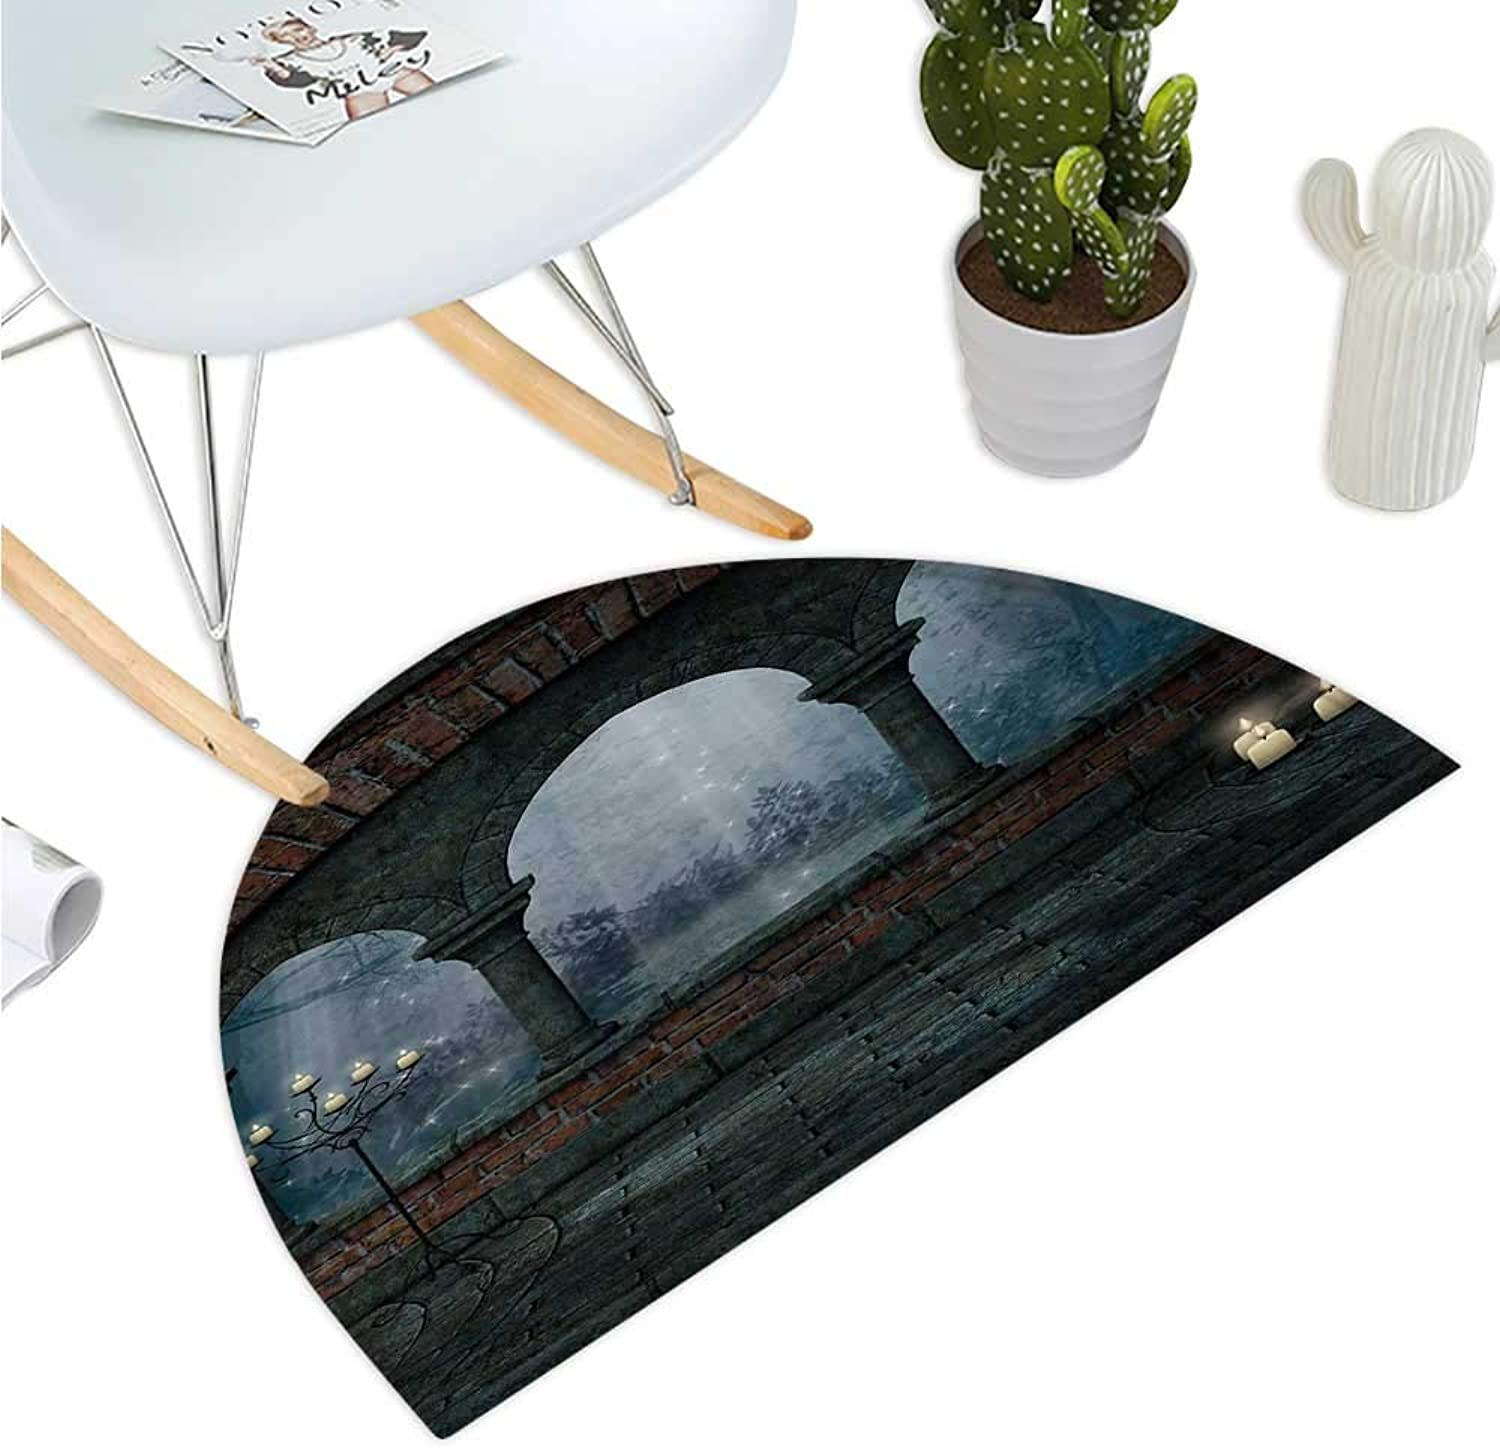 Gothic Semicircular Cushion Medieval Castle at Night with Old Arch and Candles Middle Age Misty Image Entry Door Mat H 35.4  xD 53.1  bluee Grey and Red